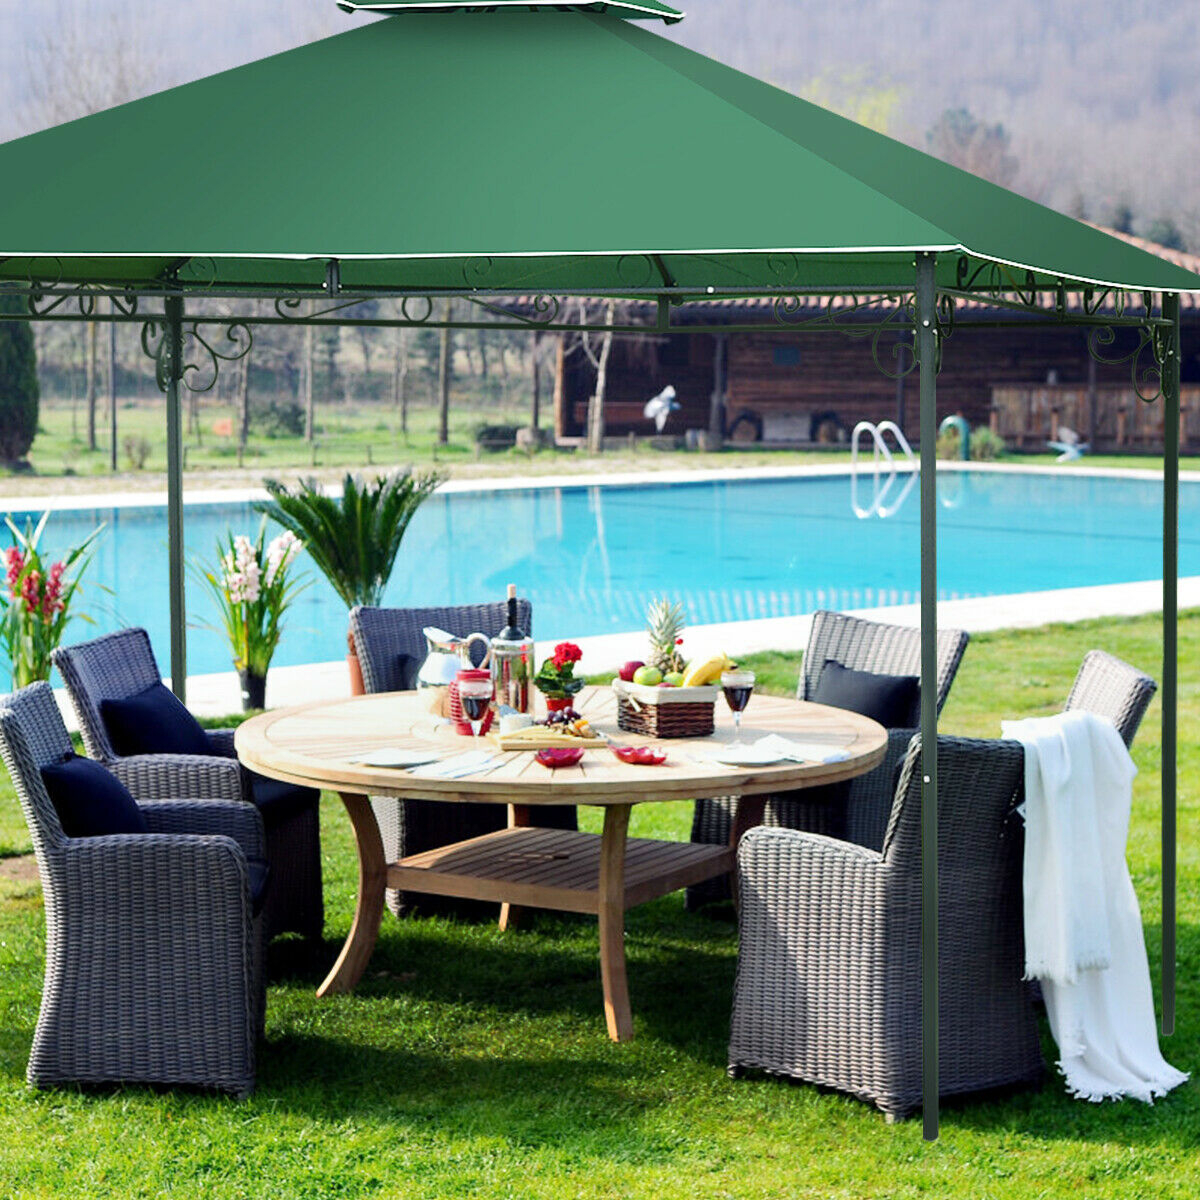 Delicieux Patio Tent Canopy Backyard Sunshade 10 X 10 Gazebo Outdoor Shelter Party  Shade